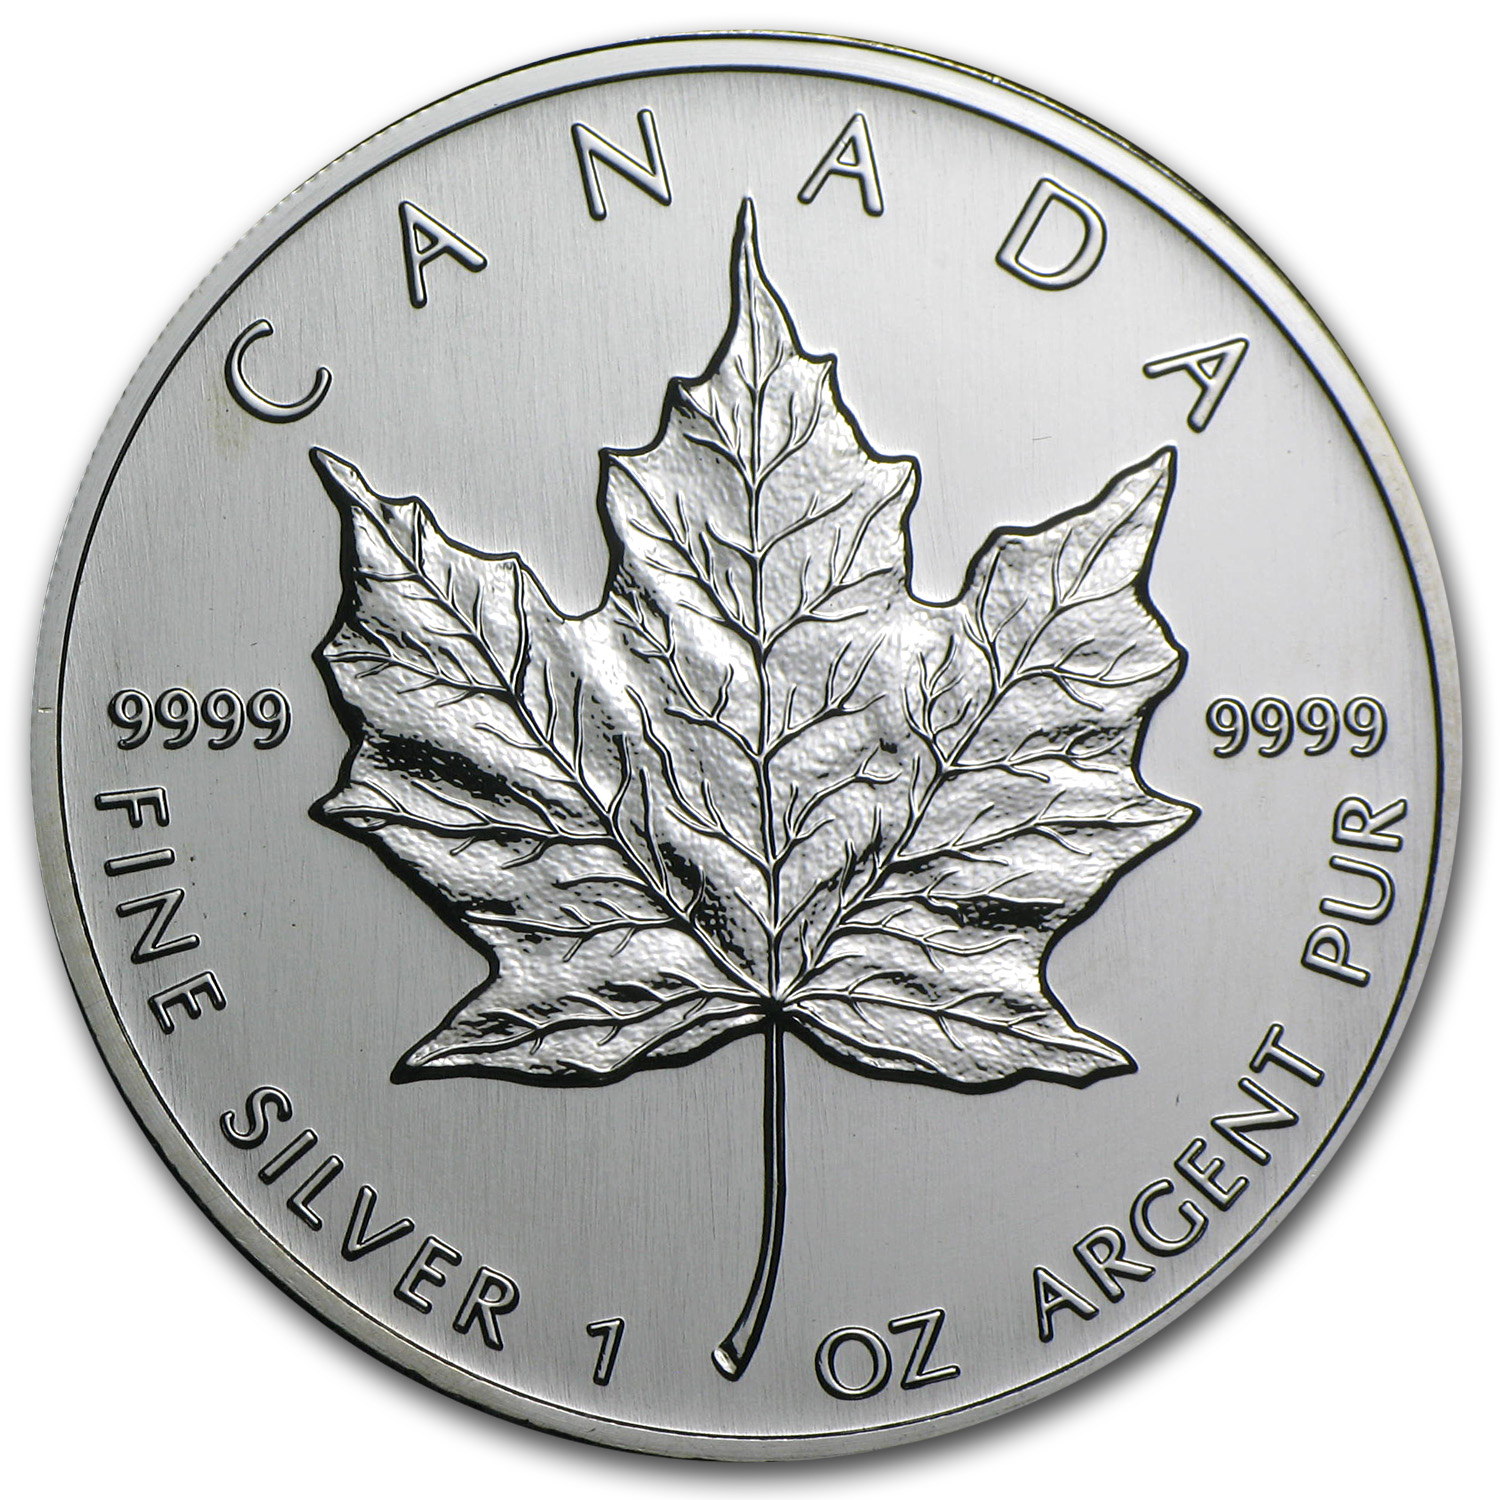 2002 1 oz Silver Canadian Maple Leaf BU